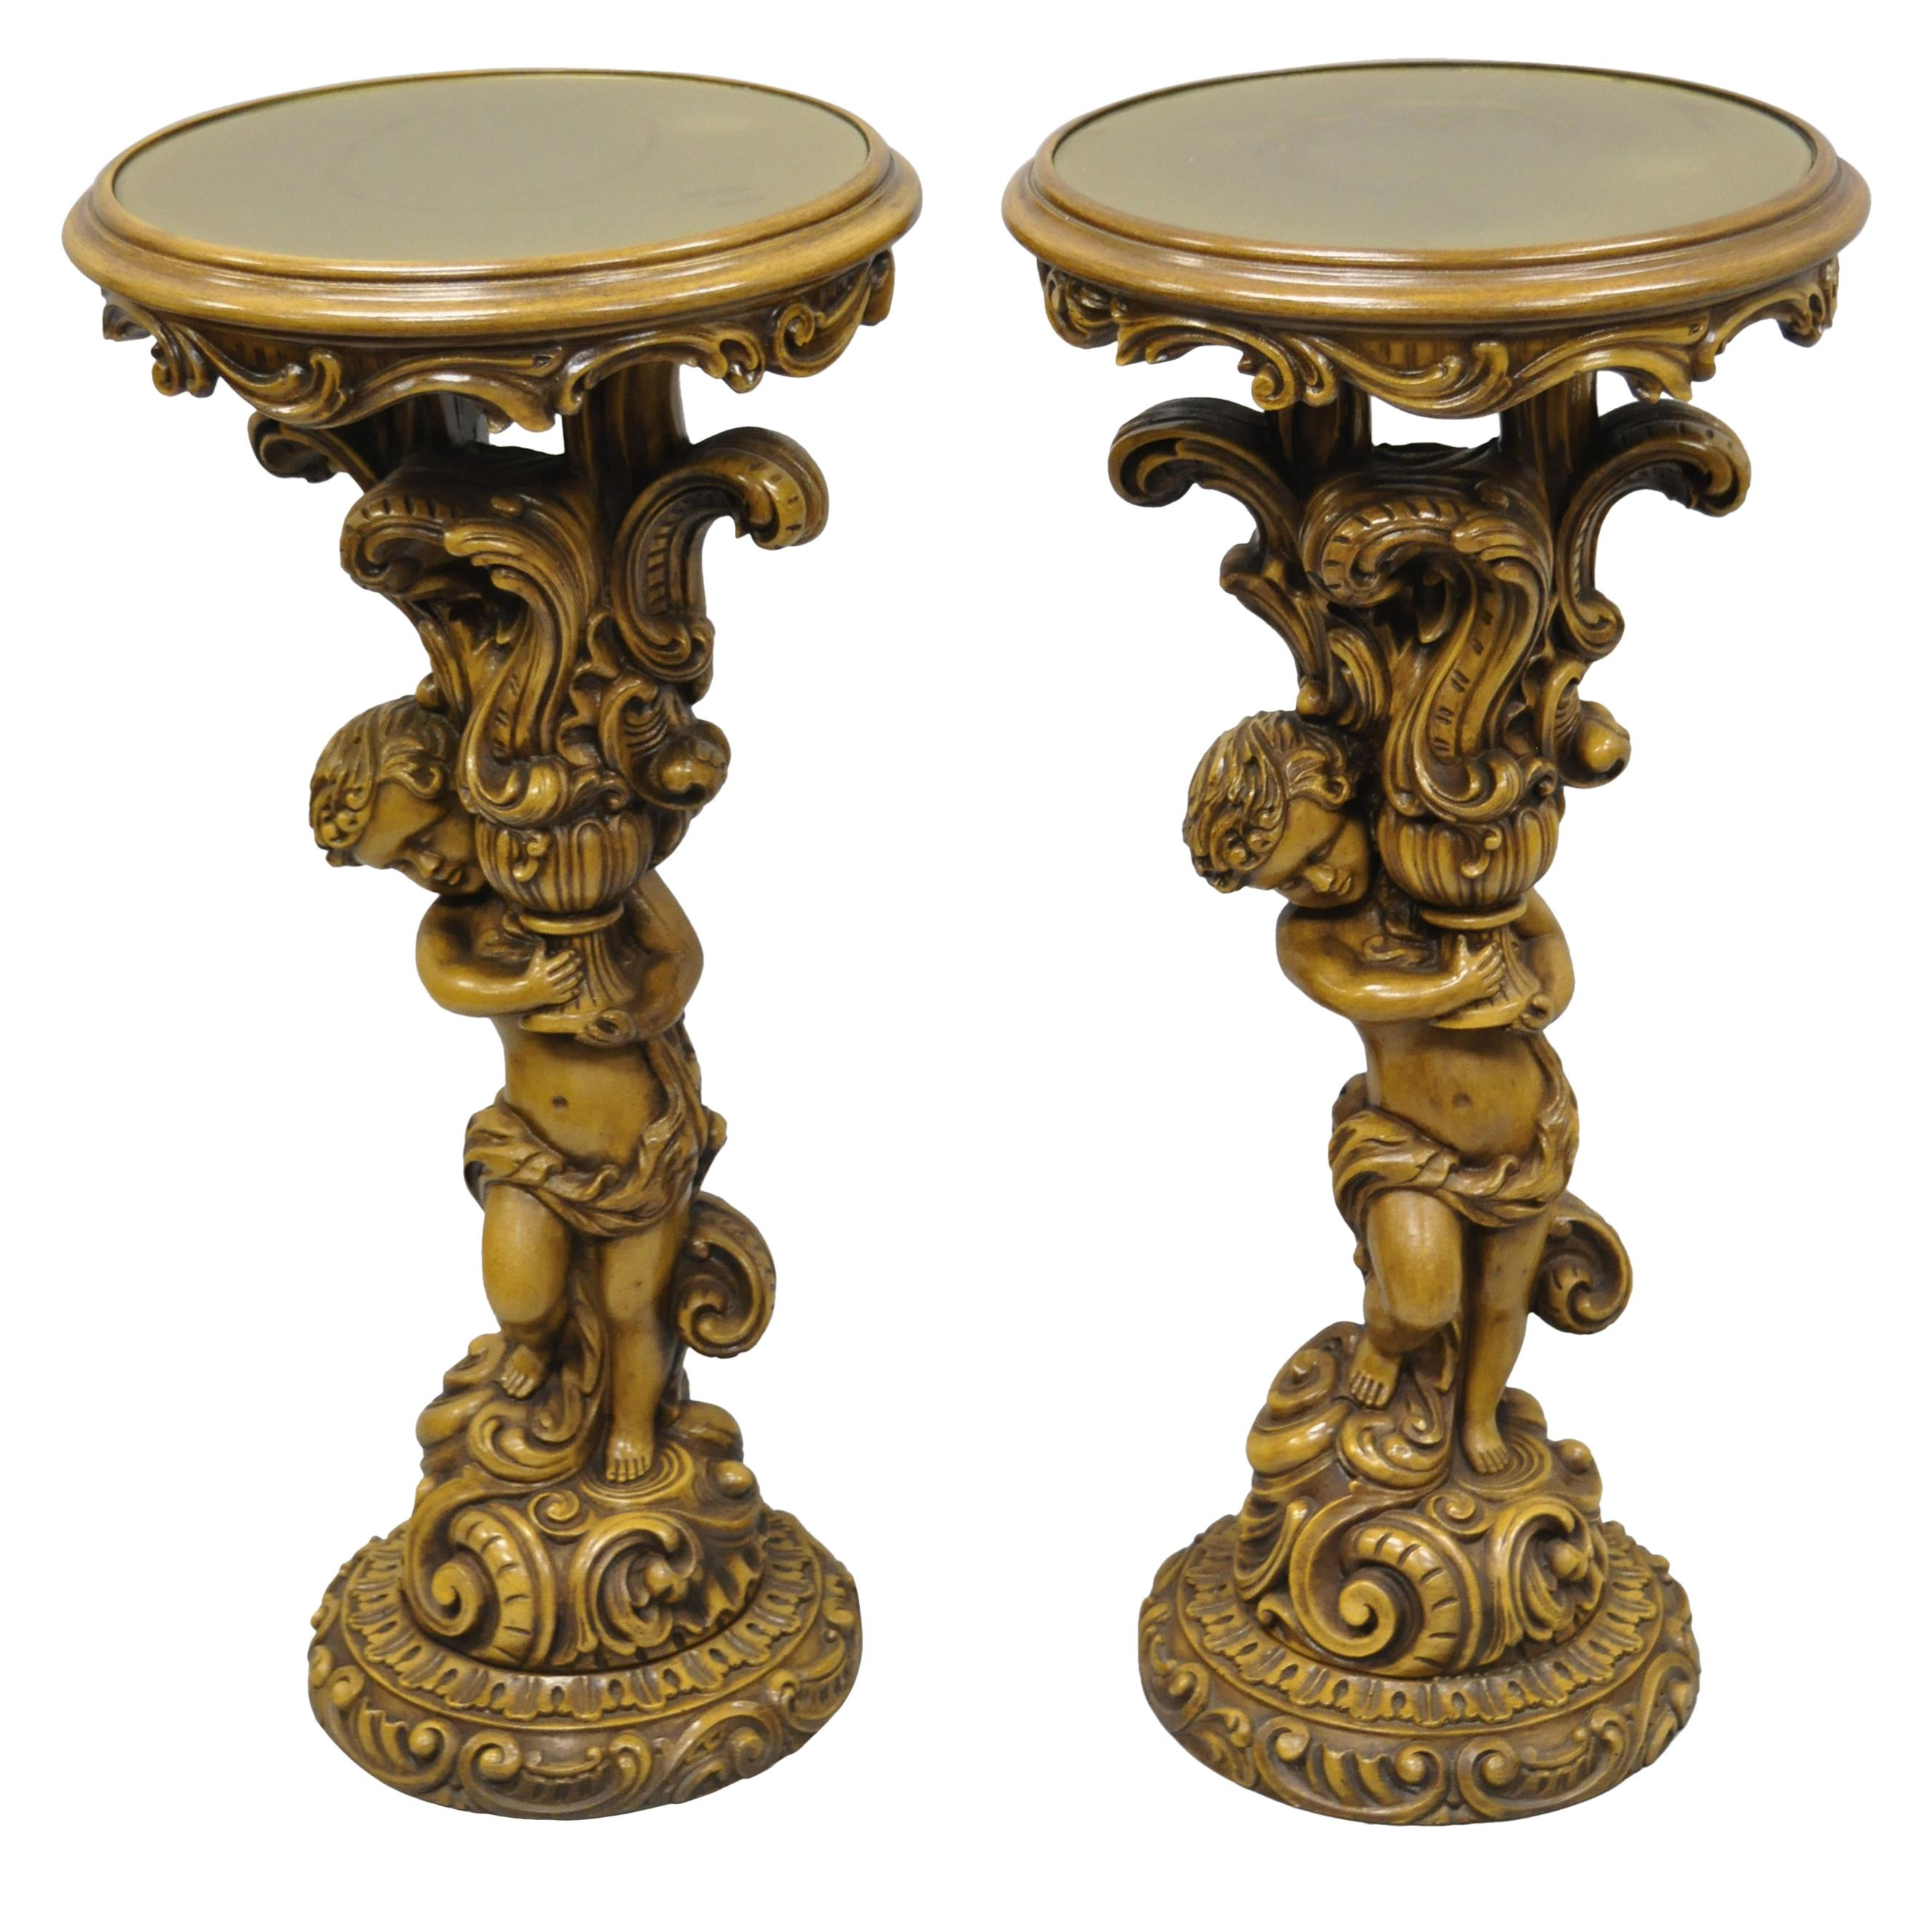 Ordinaire Pair Of French Rococo Style Figural Cherub Angel Pedestal Plant Stands Table